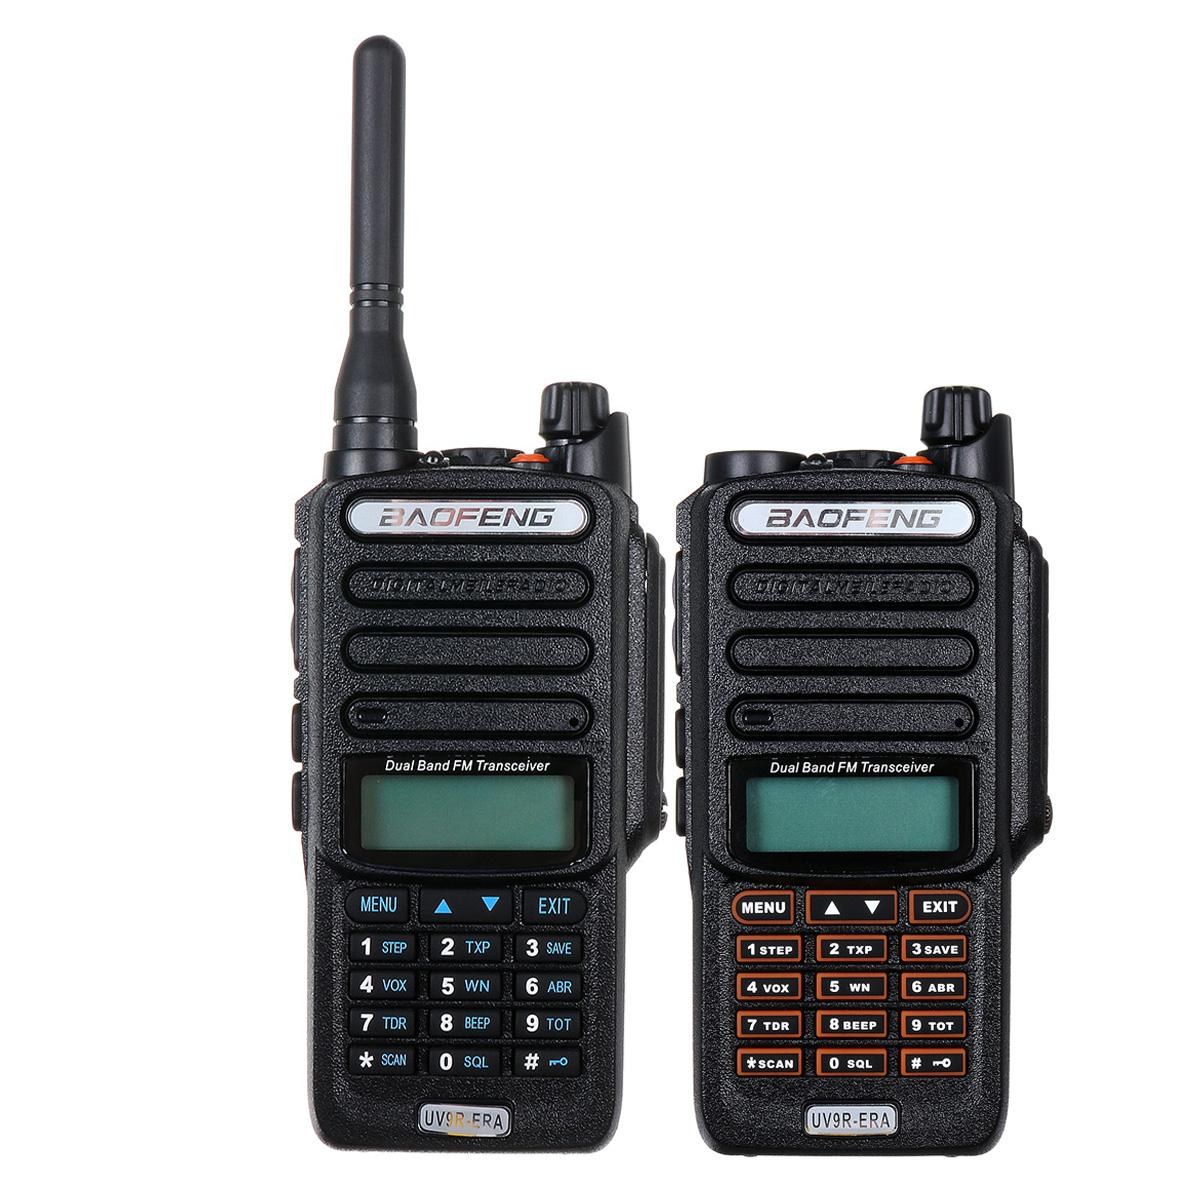 UV9R-ERA Walkie Talkie Professional UV Two Way Radio Comunicador HF Transceiver Radio Station 15km Talk Range IP57